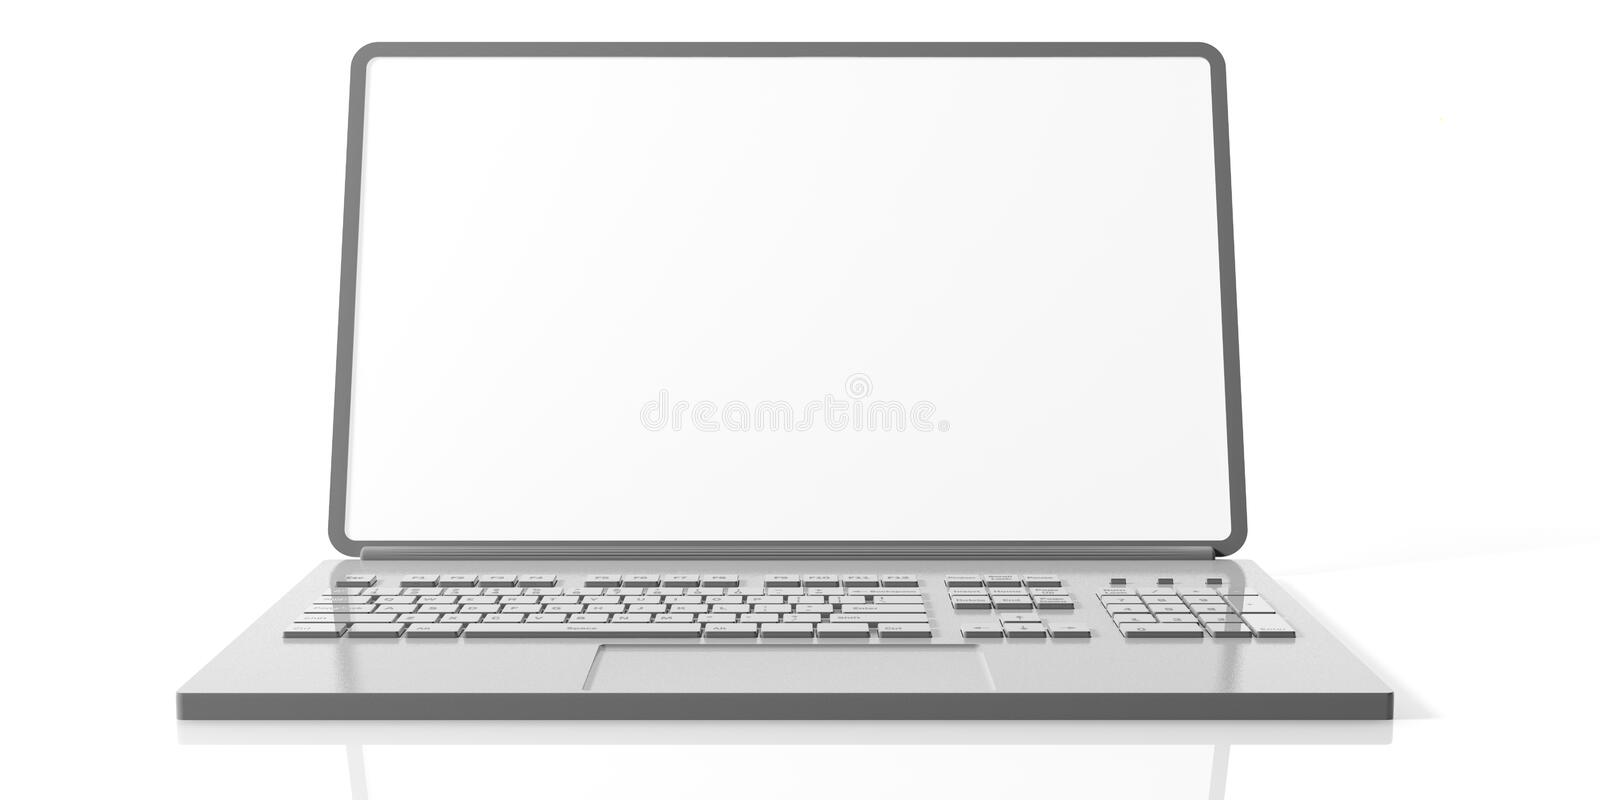 Computer laptop with blank screen isolated on white background, front view. 3d illustration vector illustration